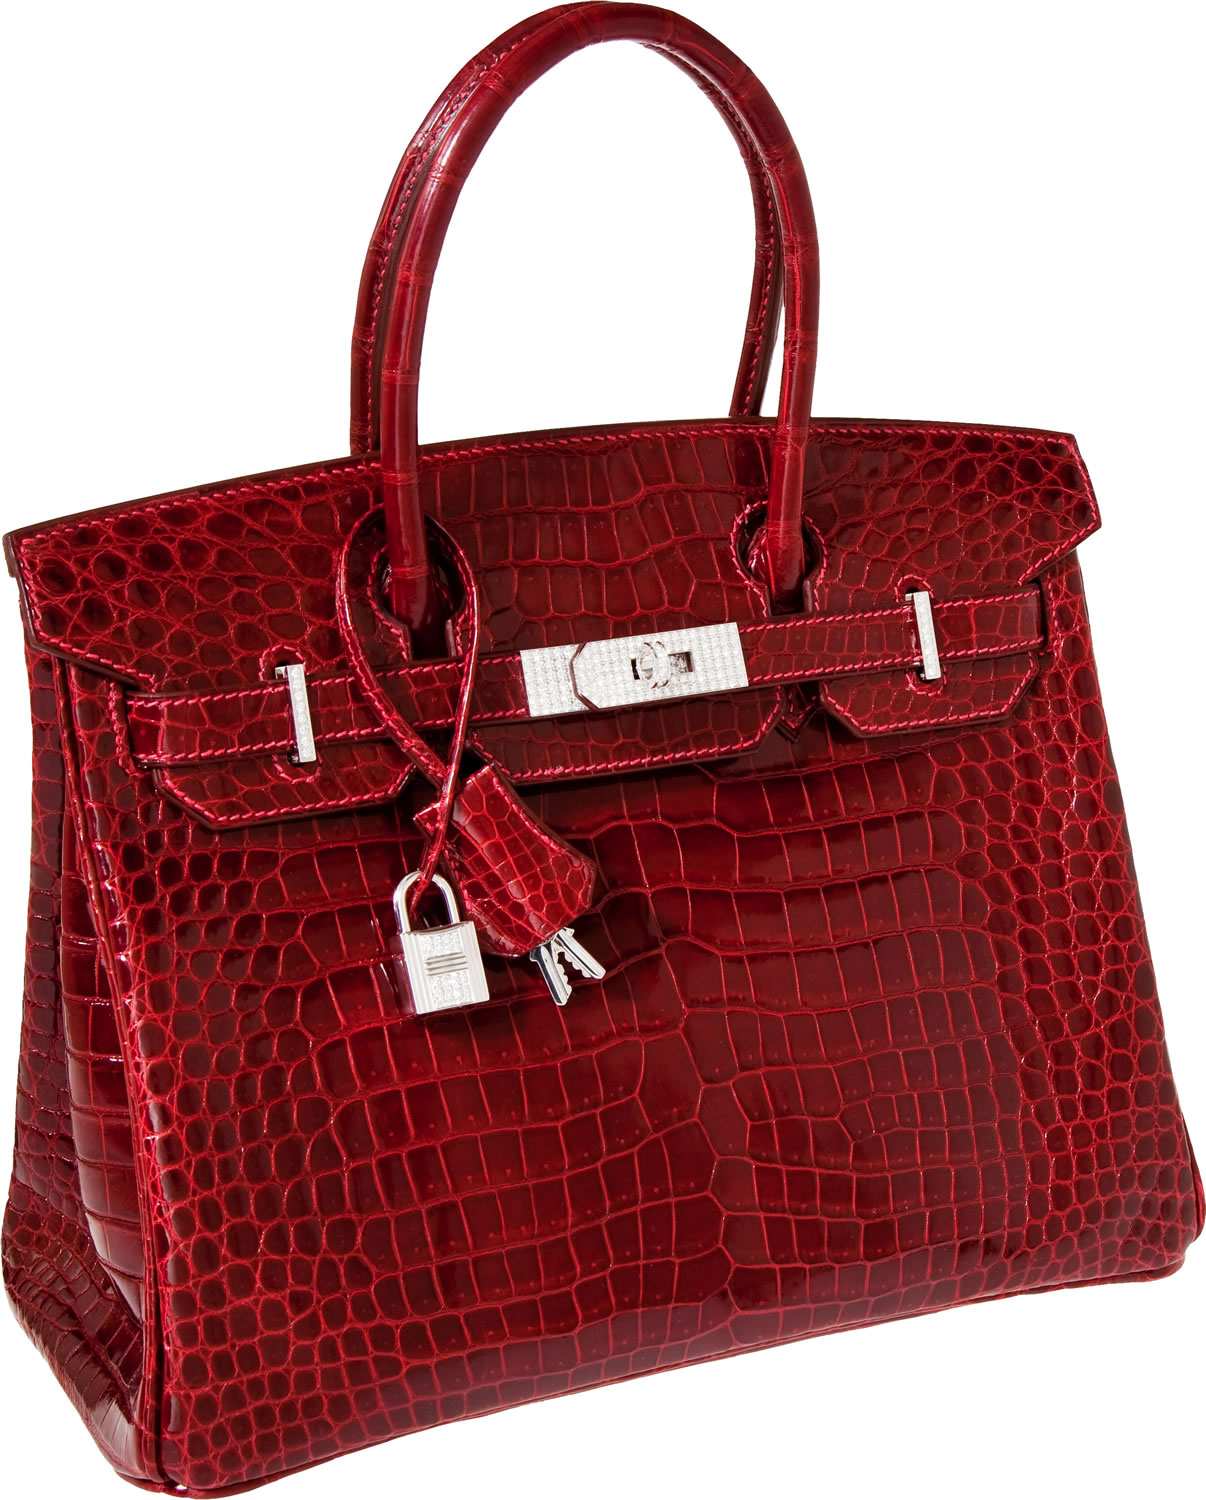 best birkin replica reviews - bolsos on Pinterest | Lady Dior, Salvatore Ferragamo and Louis ...